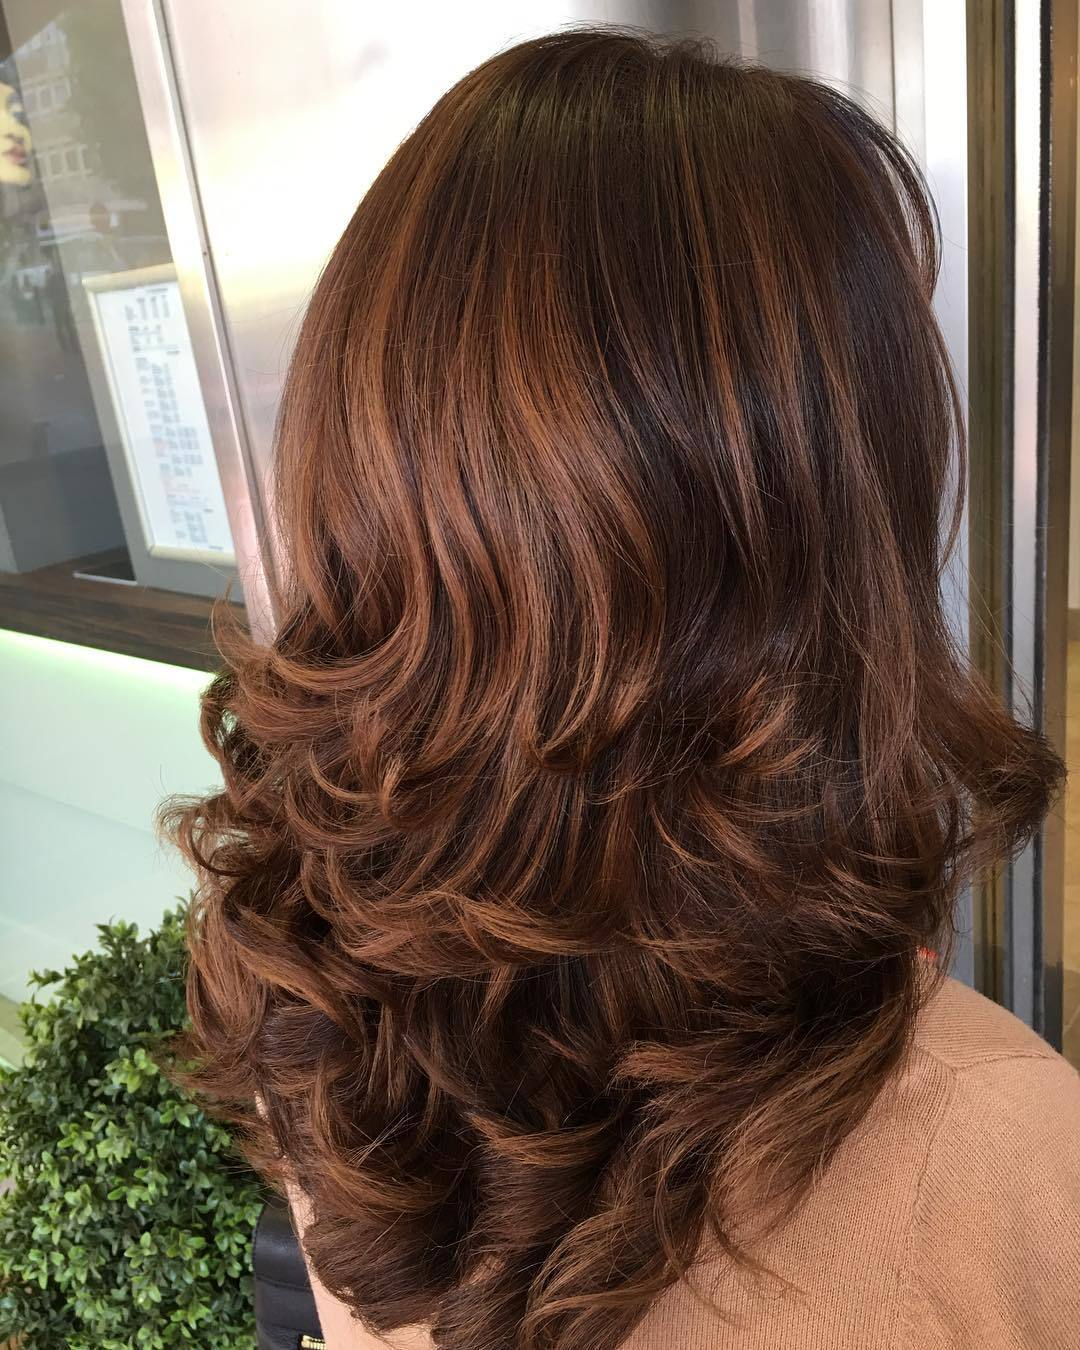 Woman chestnut brown hair styled into a blow out